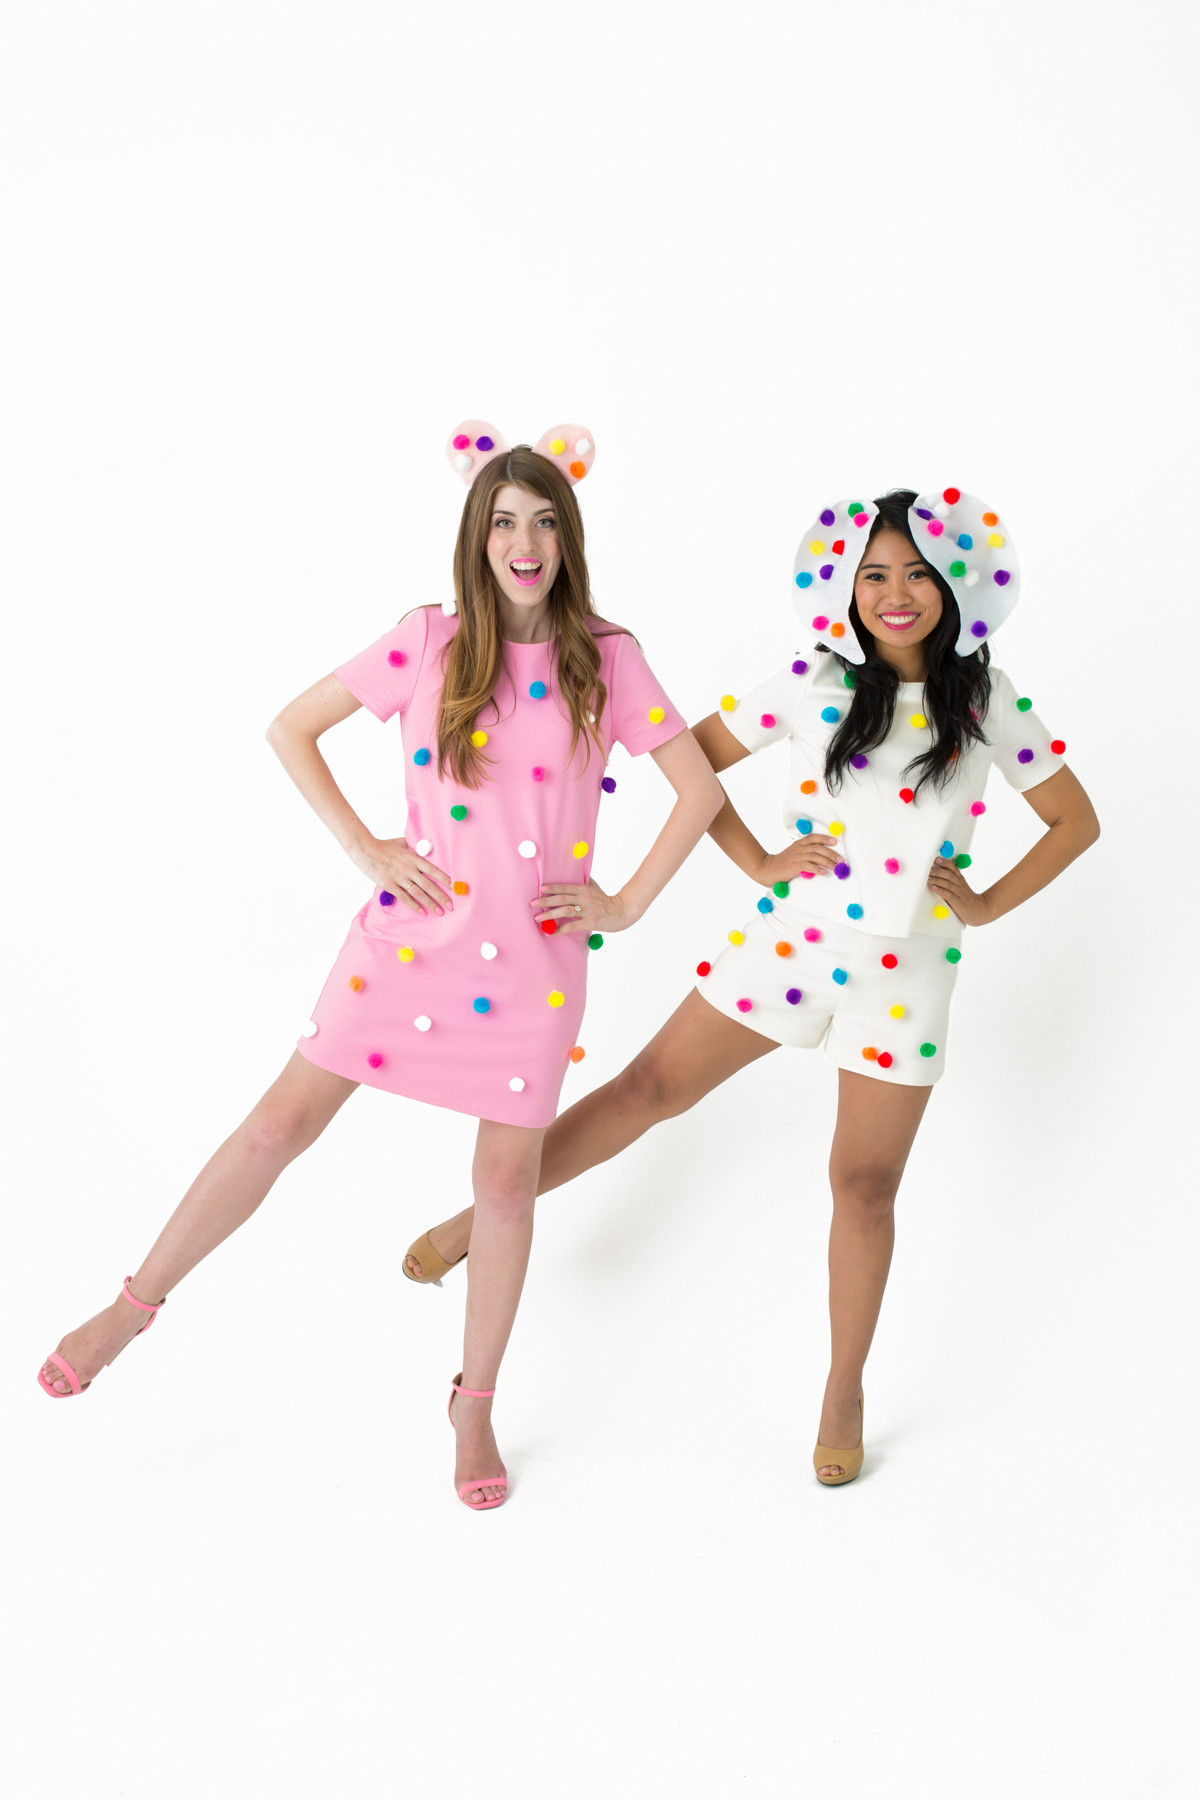 Best ideas about DIY M&M Costume . Save or Pin DIY Frosted Animal Cookie Costume Studio DIY Now.